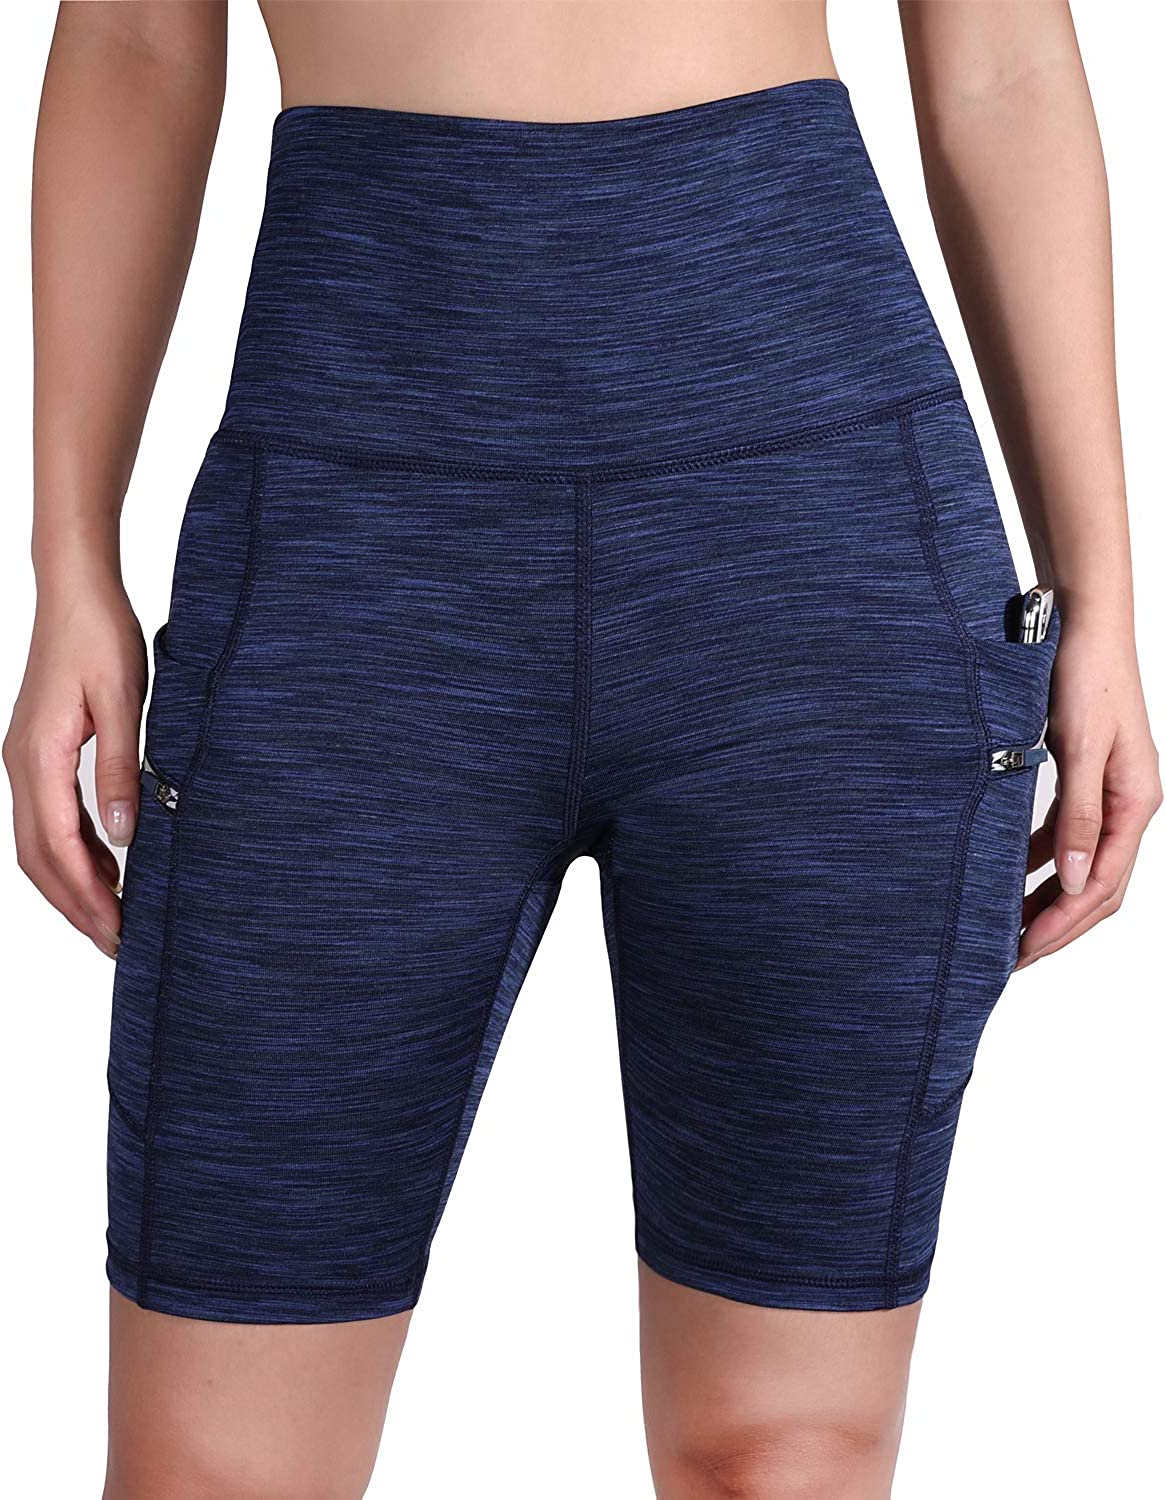 ODODOS High Waist Out Pocket Yoga Short Tummy Control Workout Running Athletic Non See-Through Yoga Shorts: Clothing